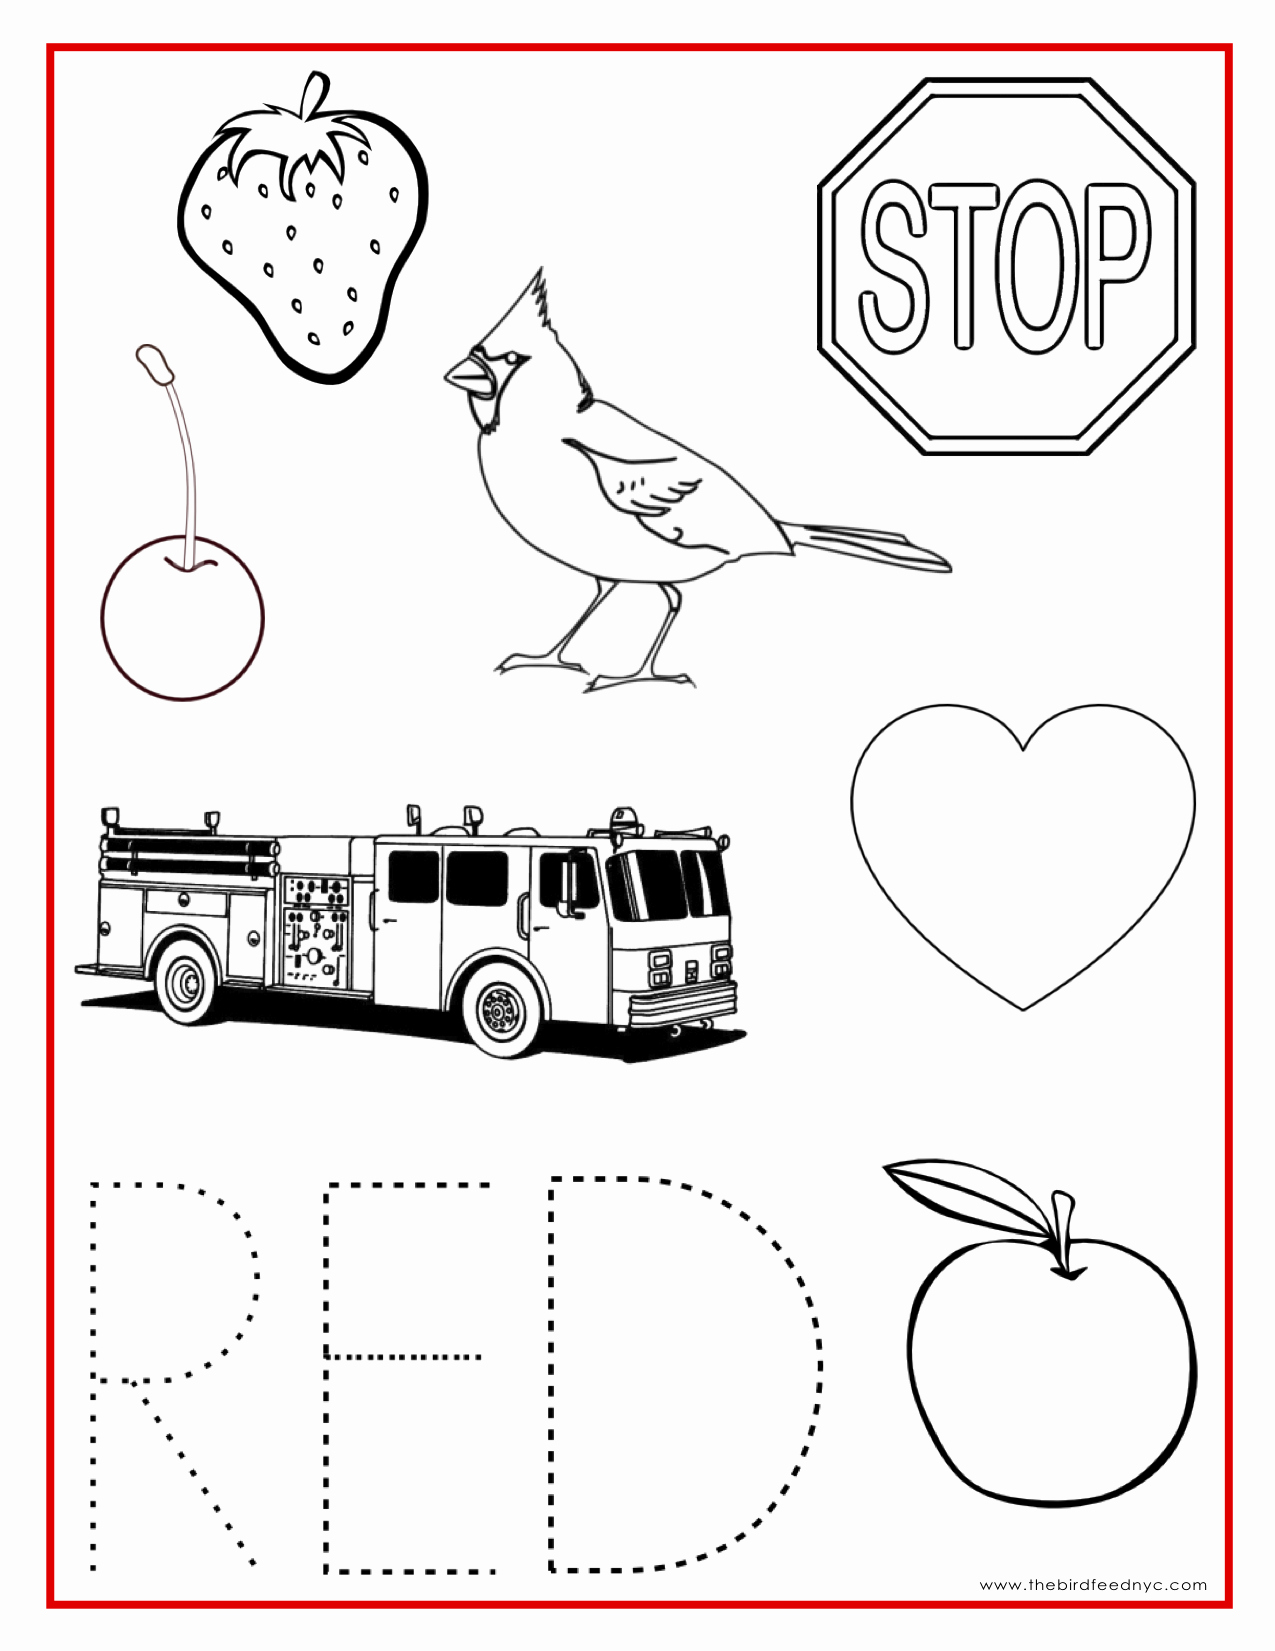 Color Red Worksheets for toddlers Unique Red Color Activity Sheet